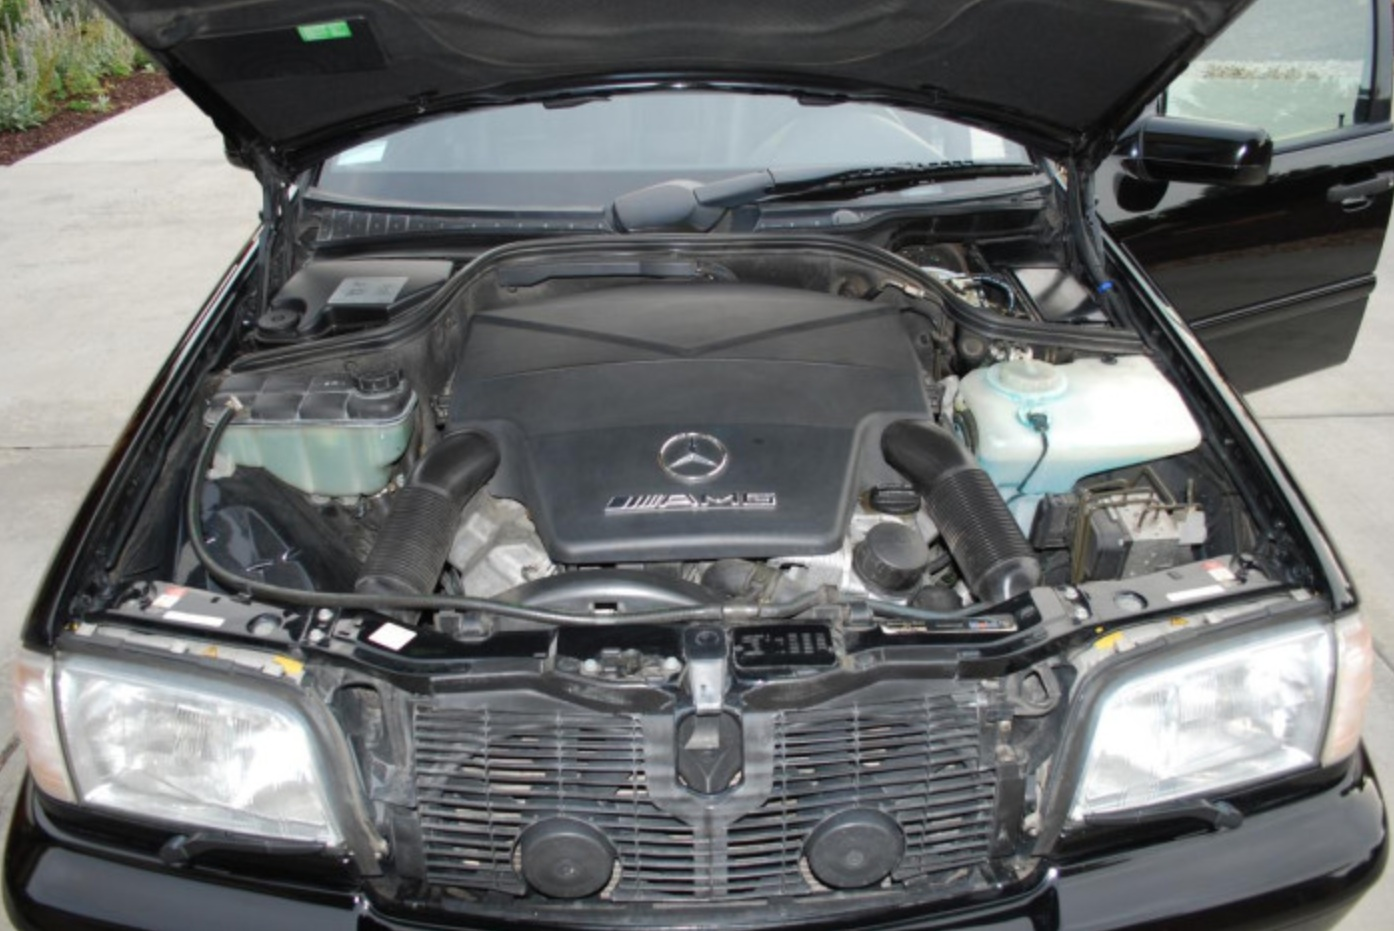 C Class Archives Page 4 Of 5 German Cars For Sale Blog Fuel Filter Mercedes Benz 1998 C4 3 As A Former Owner W202 I Can Say First Hand That These Are Fairly Hearty And Cover Lots Miles Effortlessly In The Traditional